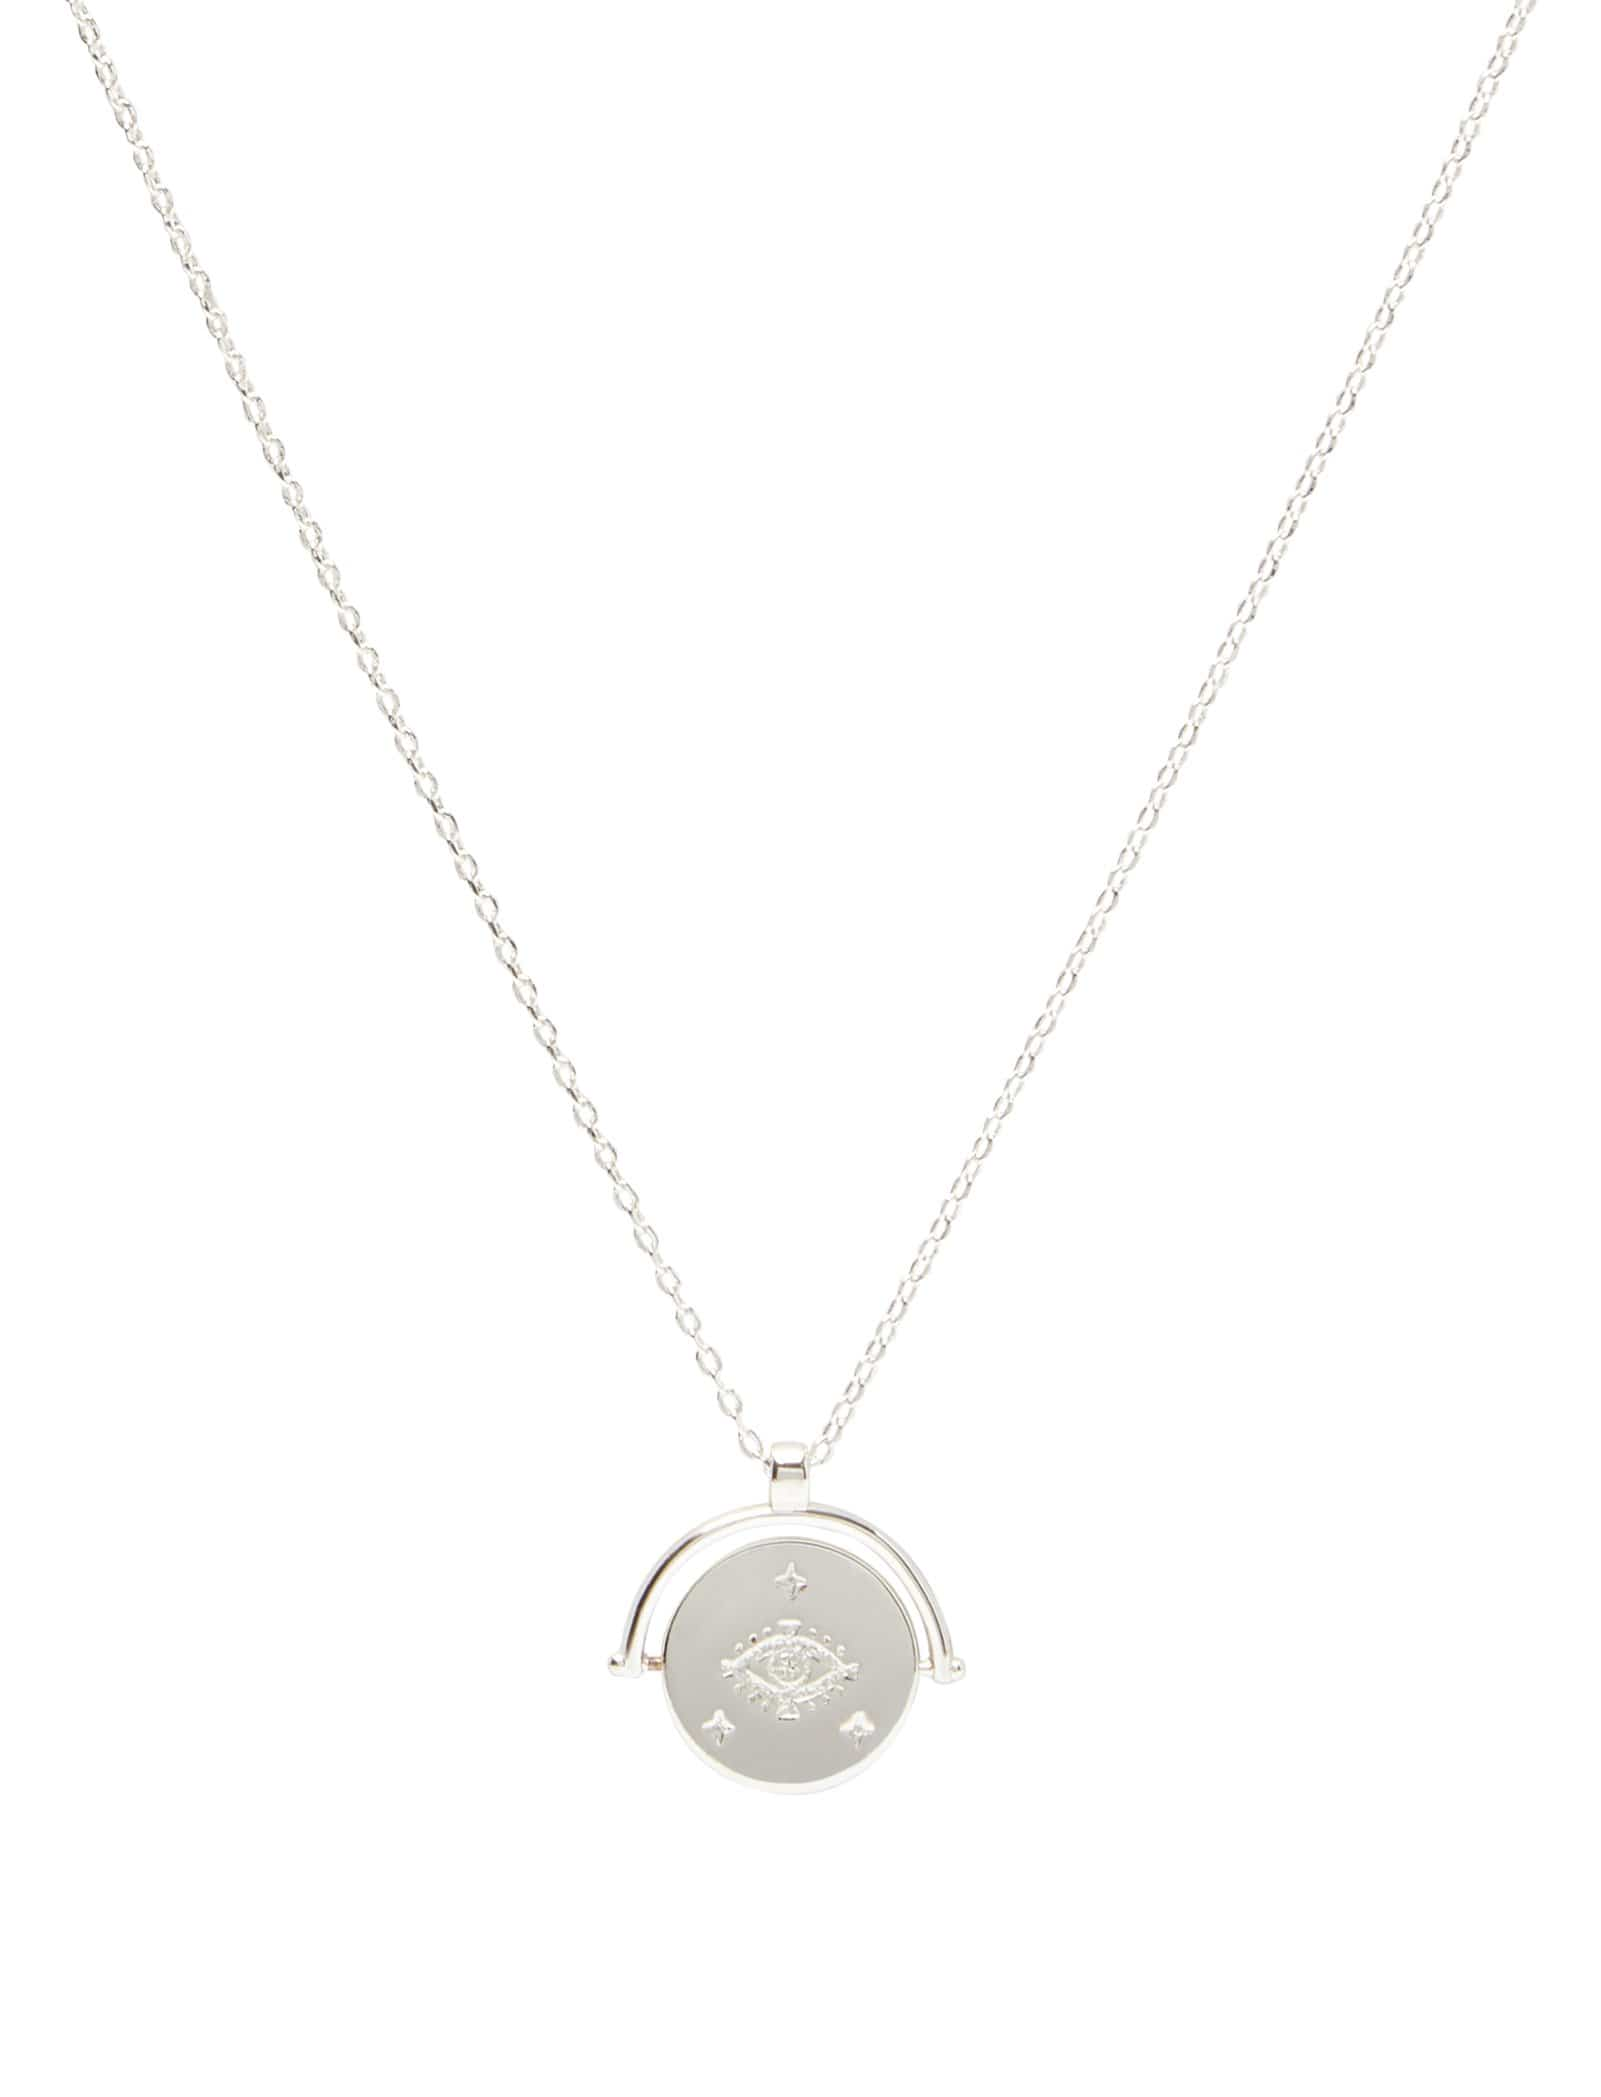 Neptune Spinner Necklace